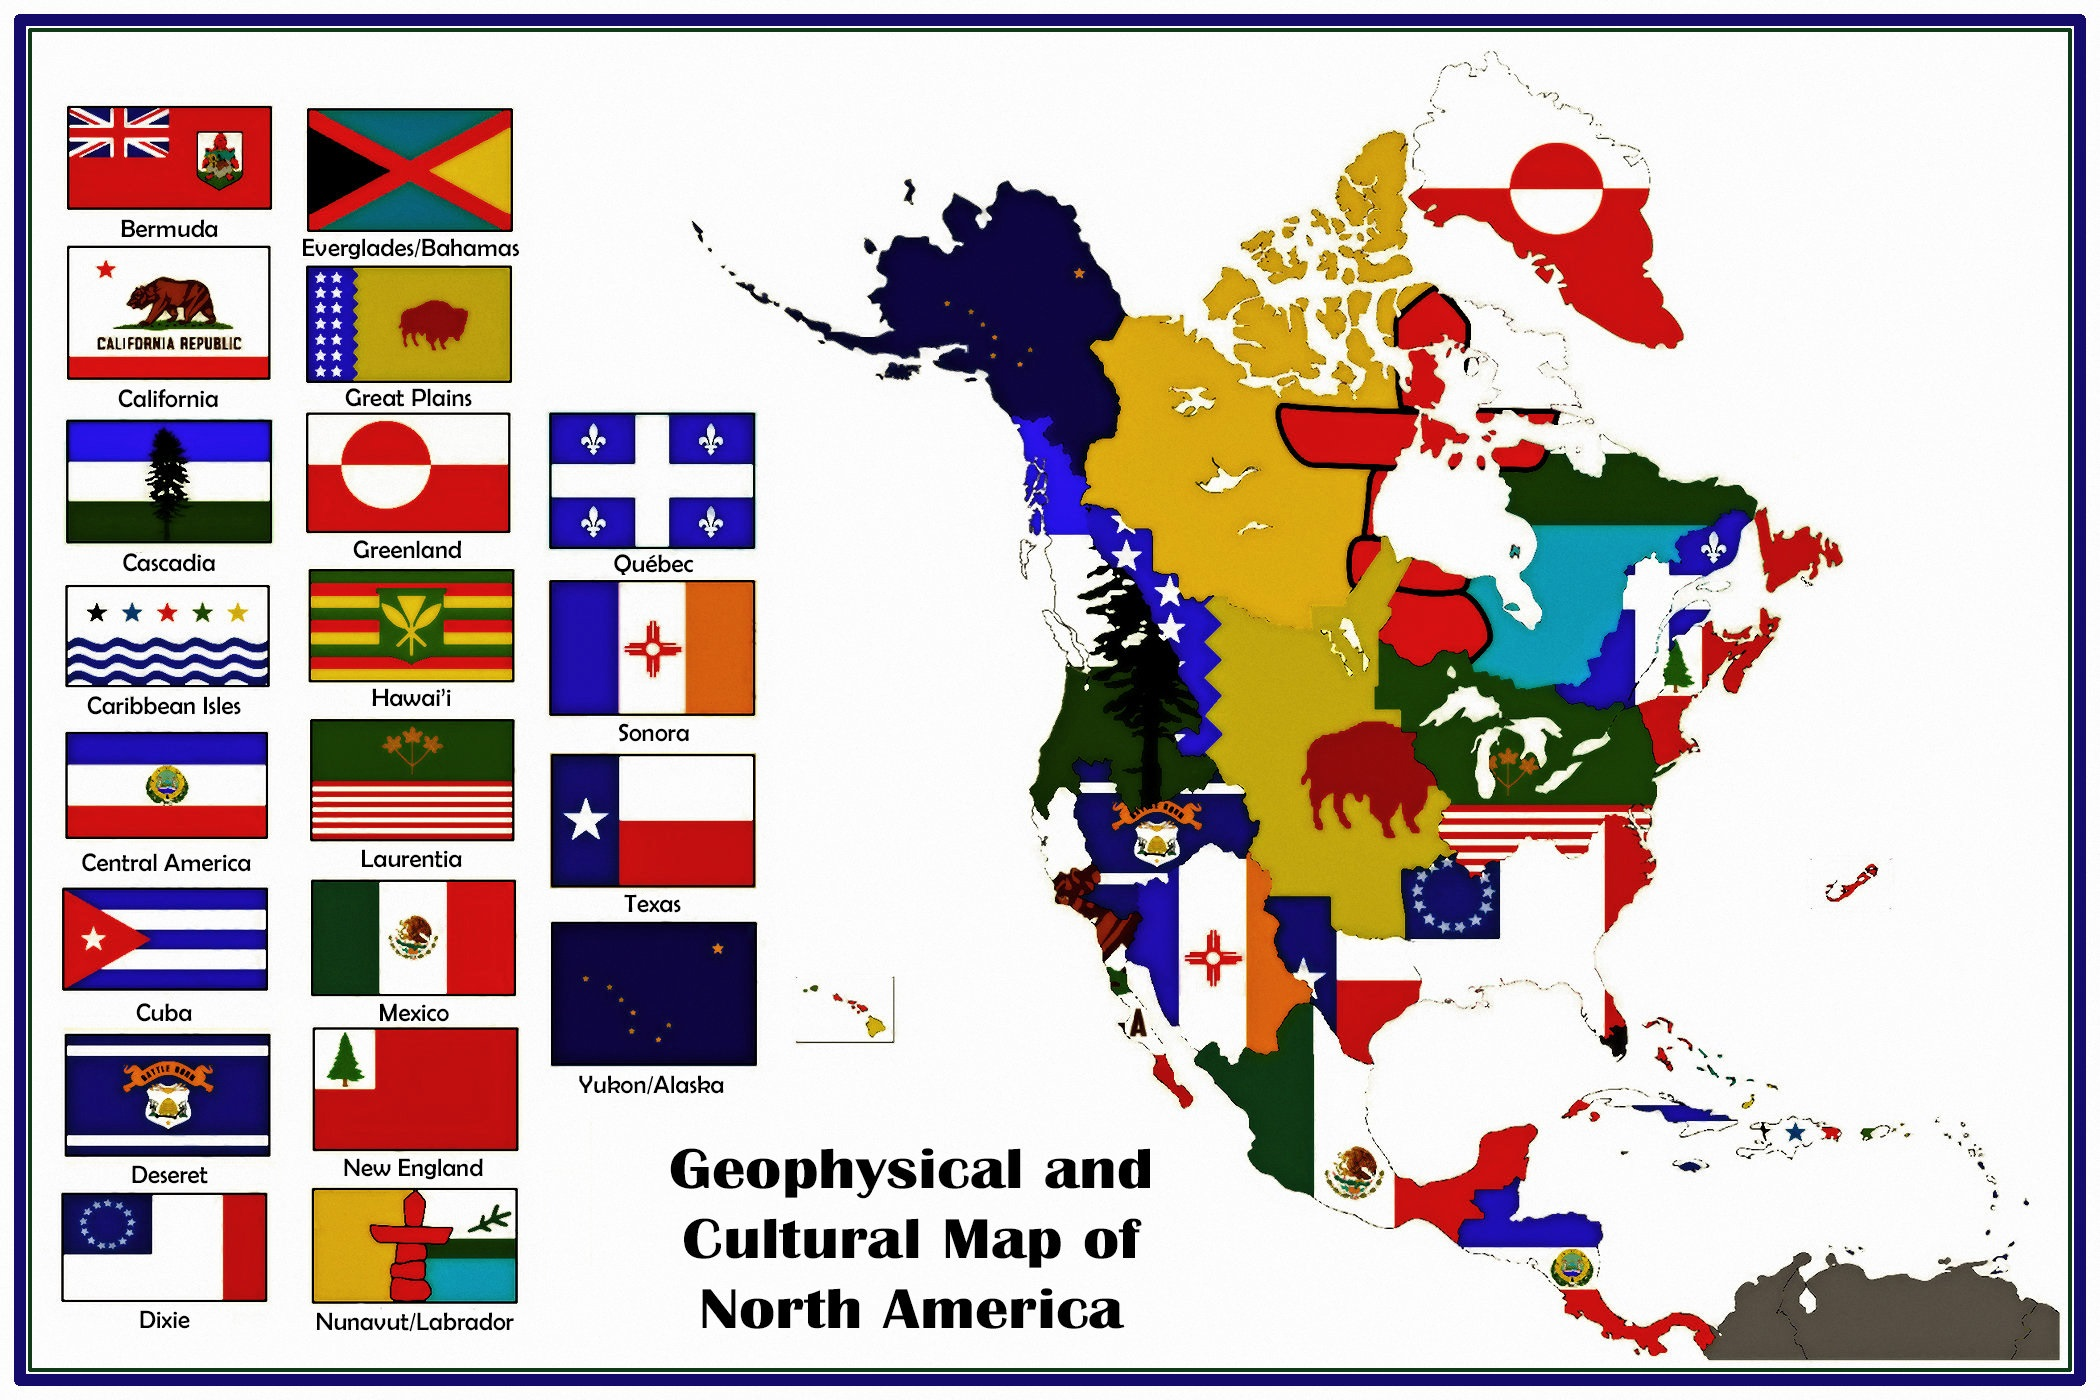 Map Of America 2017.26 August 2017 Geophysical And Cultural Map Of North America